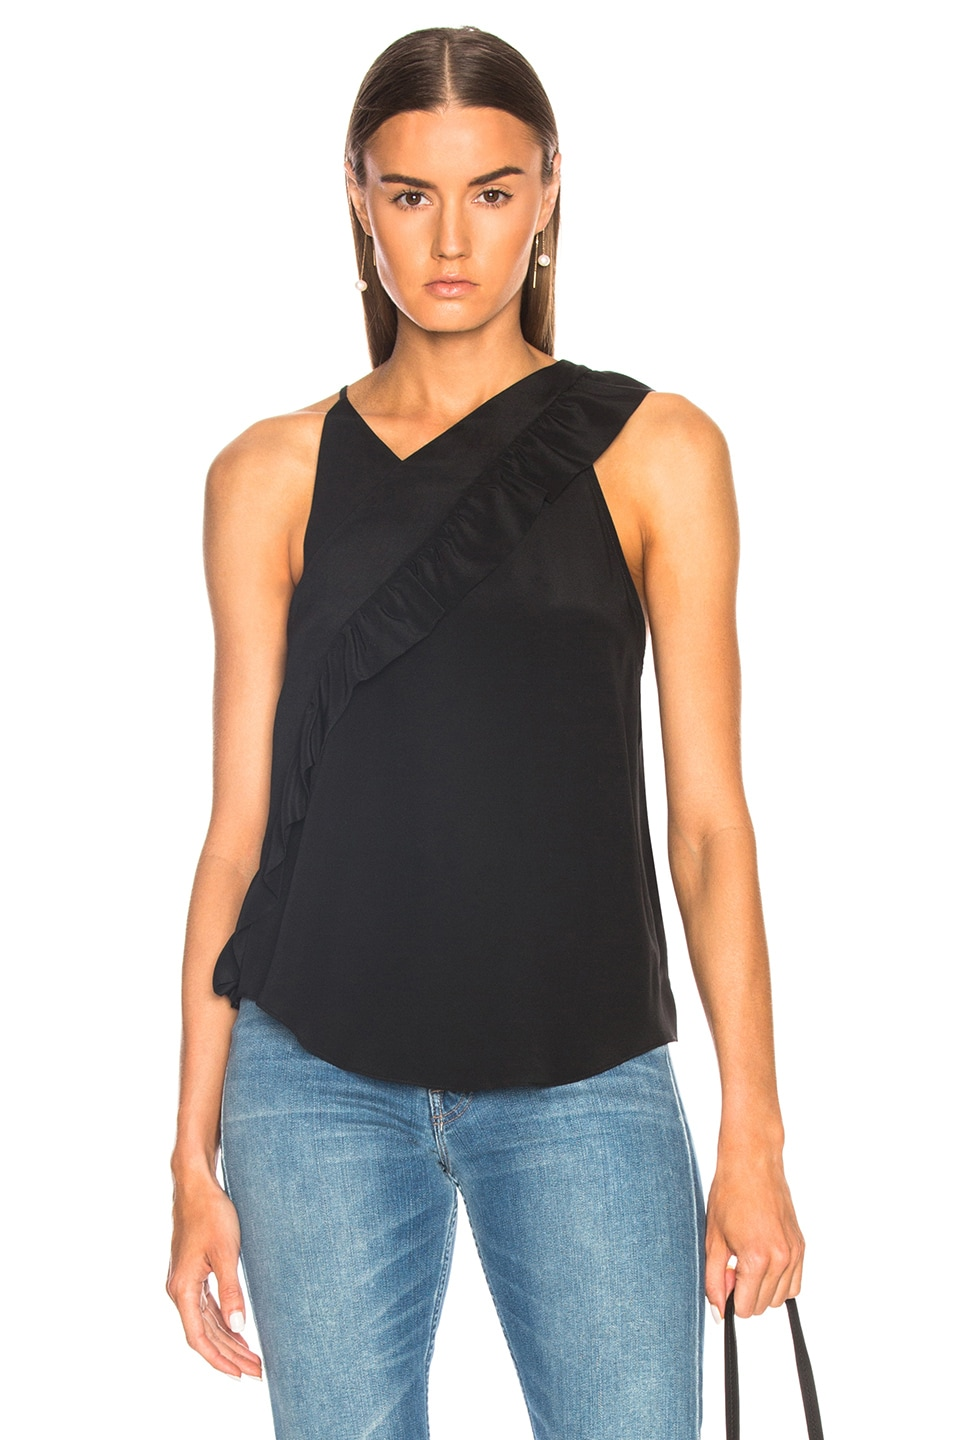 Blonie Top in Black Iro Buy Cheap With Mastercard Cheap Find Great Visit For Nice Cheap Online Cheap Purchase Unvwlct